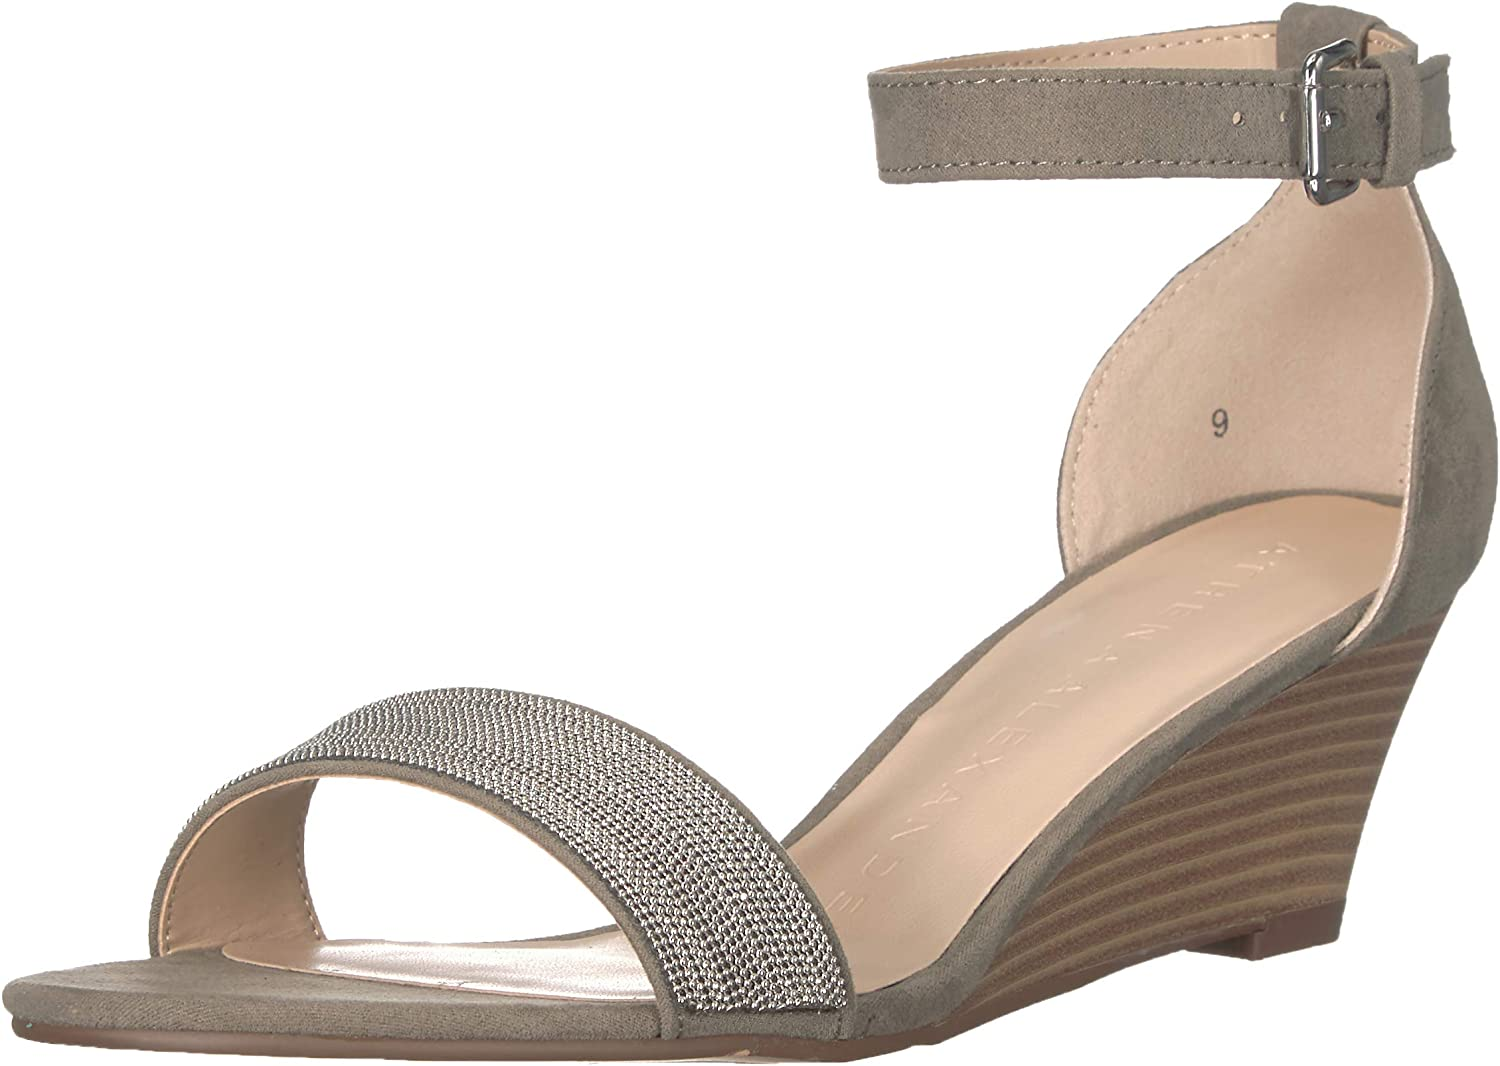 Athena Alexander Women's Enfield Wedge Sandal, Grey Suede, 8.5 M US